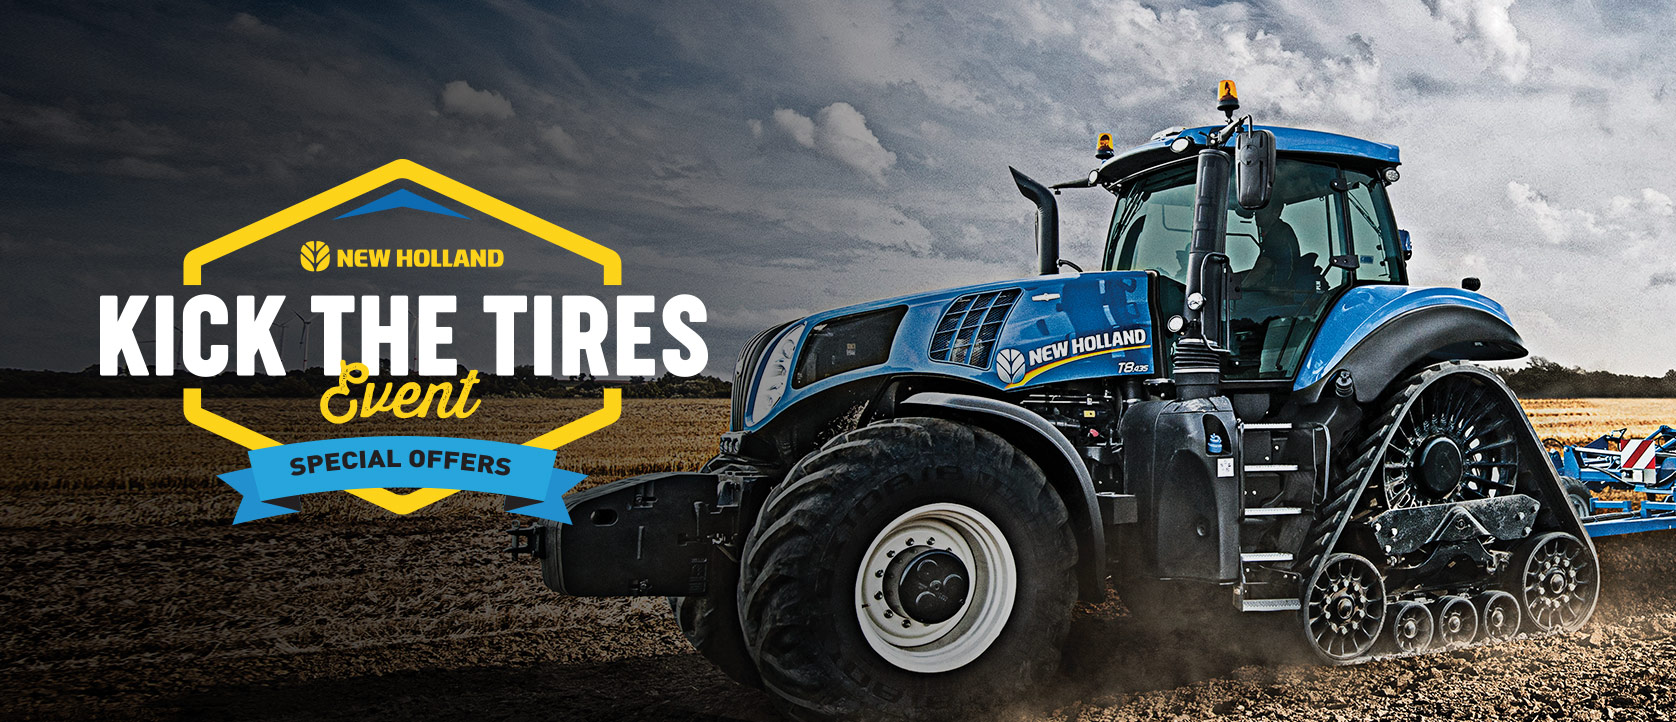 kick-the-tires-event-new-holland-promotions